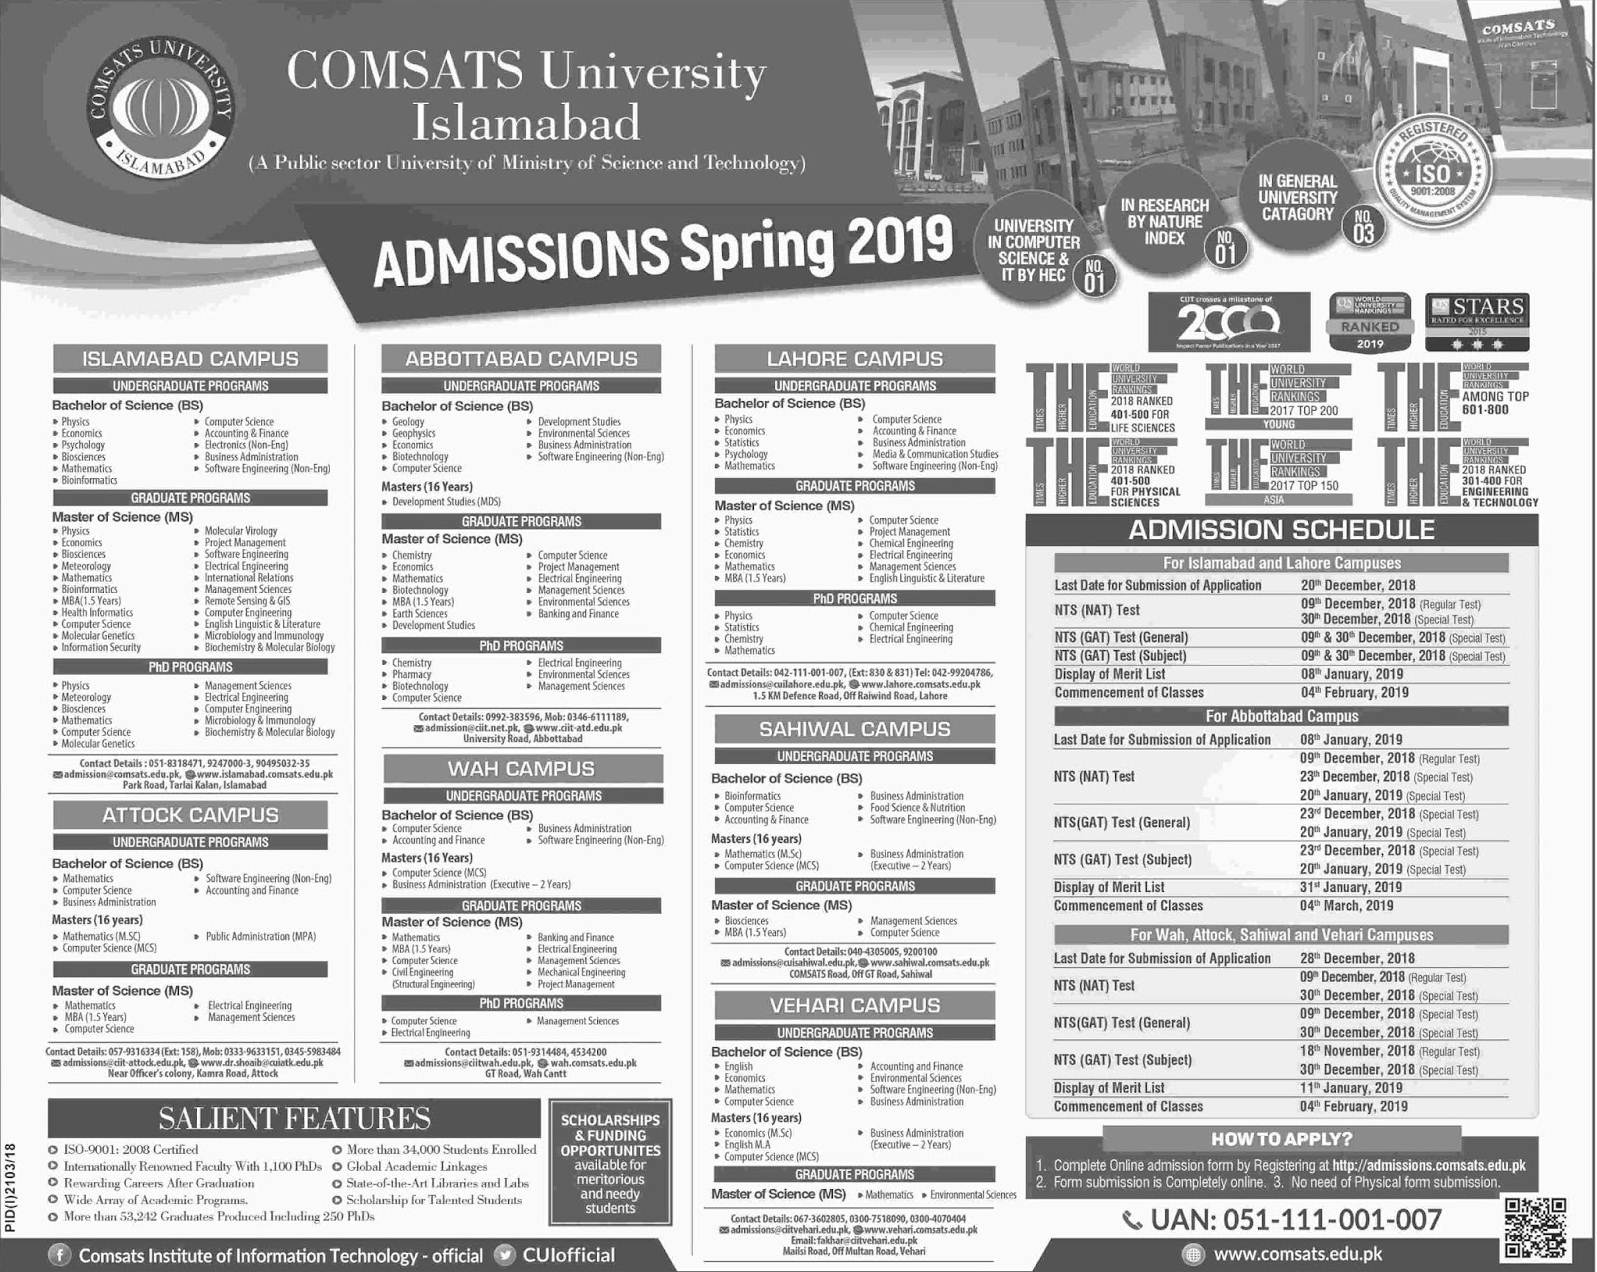 COMSAT University Spring Admissions 2019